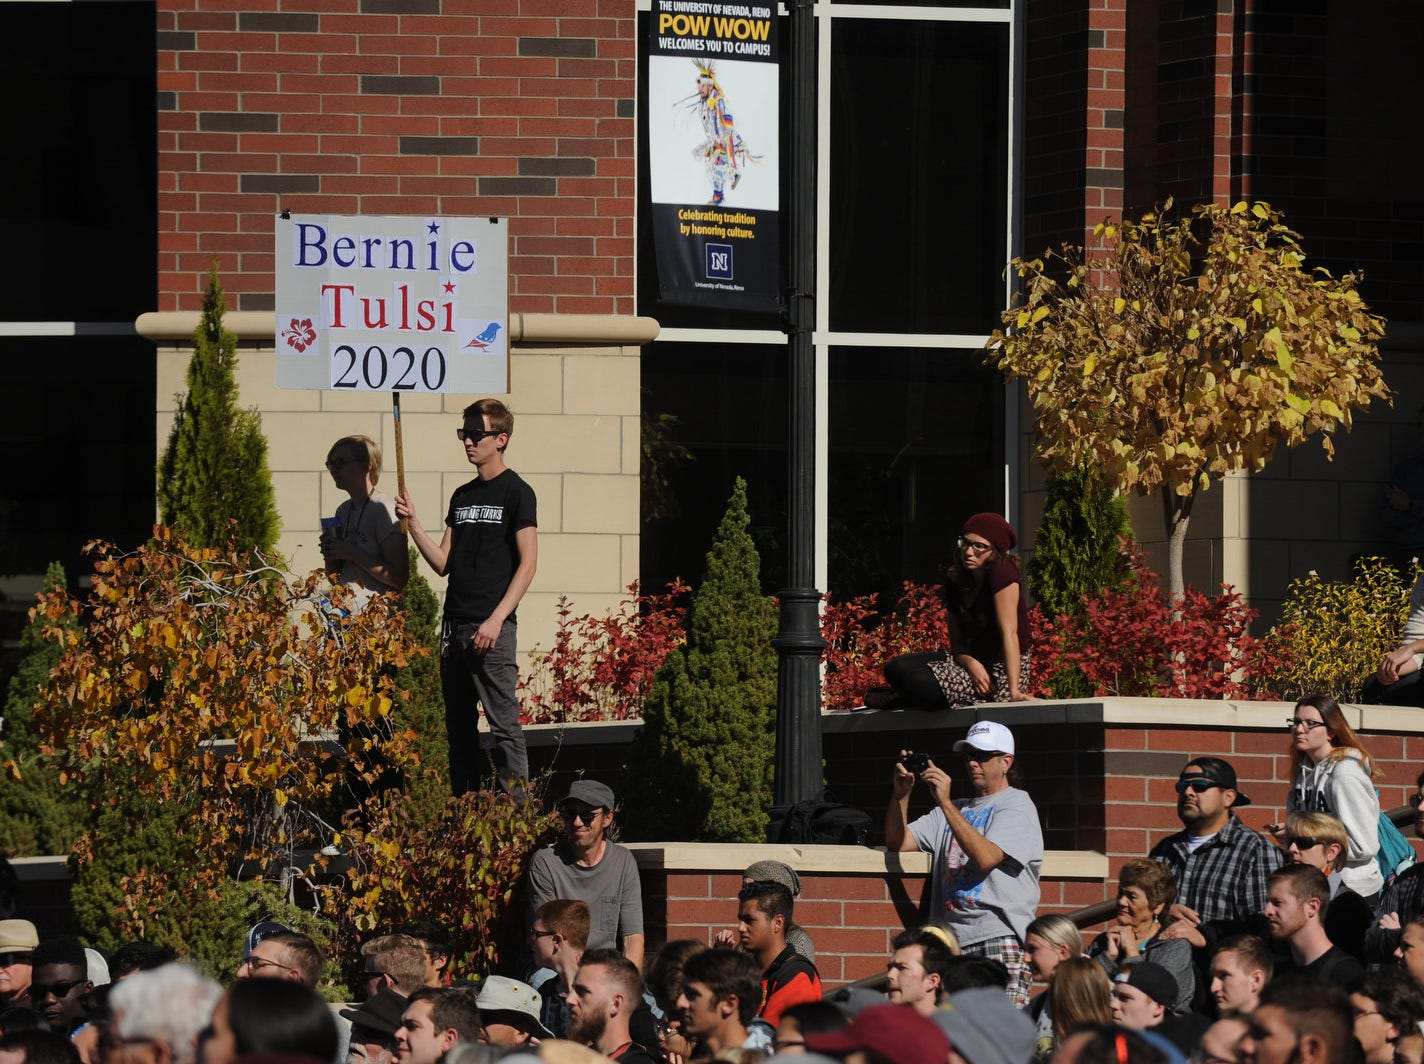 Senator Bernie Sanders campaigns for Nevada Democrats on the University of Nevada, Reno campus on Oct. 25, 2018.